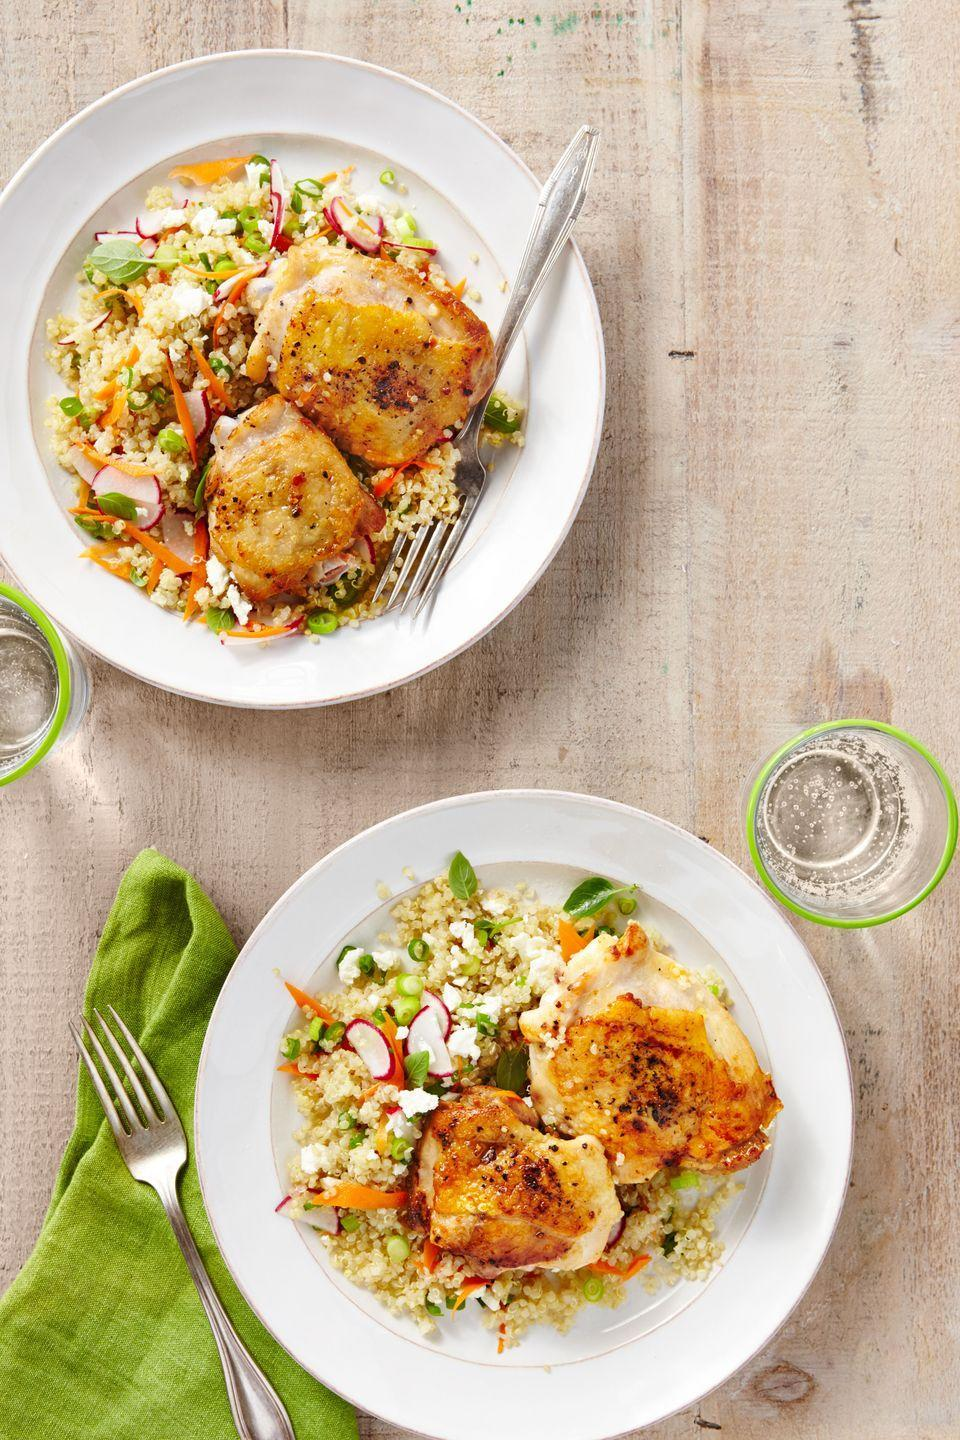 "<p>Delicious and healthy joining forces on a single plate? Dreams do come true!</p><p><a href=""https://www.countryliving.com/food-drinks/recipes/a37757/salt-and-pepper-chicken-with-spring-quinoa-pilaf-recipe/"" rel=""nofollow noopener"" target=""_blank"" data-ylk=""slk:Get the recipe."" class=""link rapid-noclick-resp""><strong>Get the recipe.</strong></a></p>"